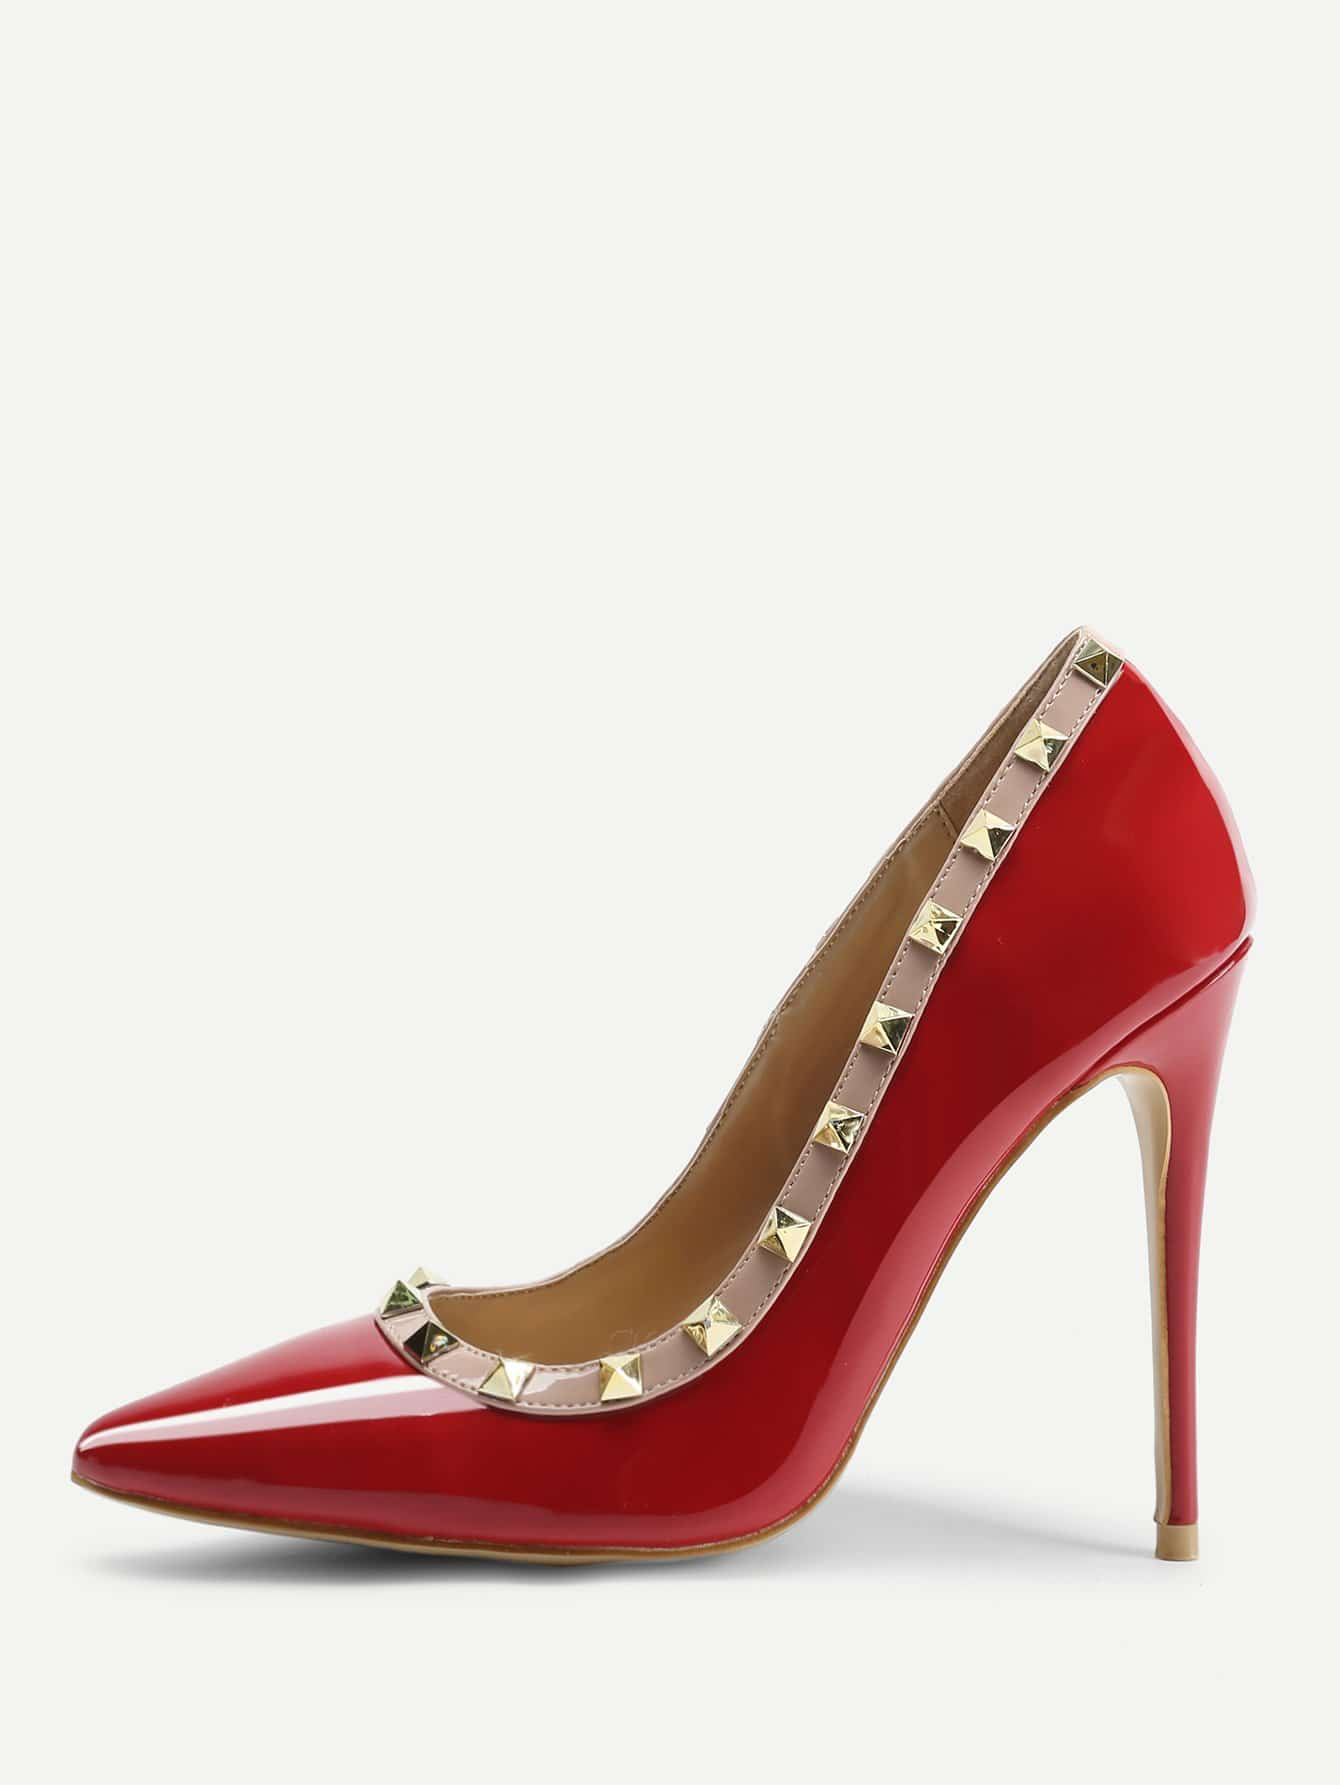 Rockstud Detail High Heel Pumps запонки mitya veselkov эйфелева башня